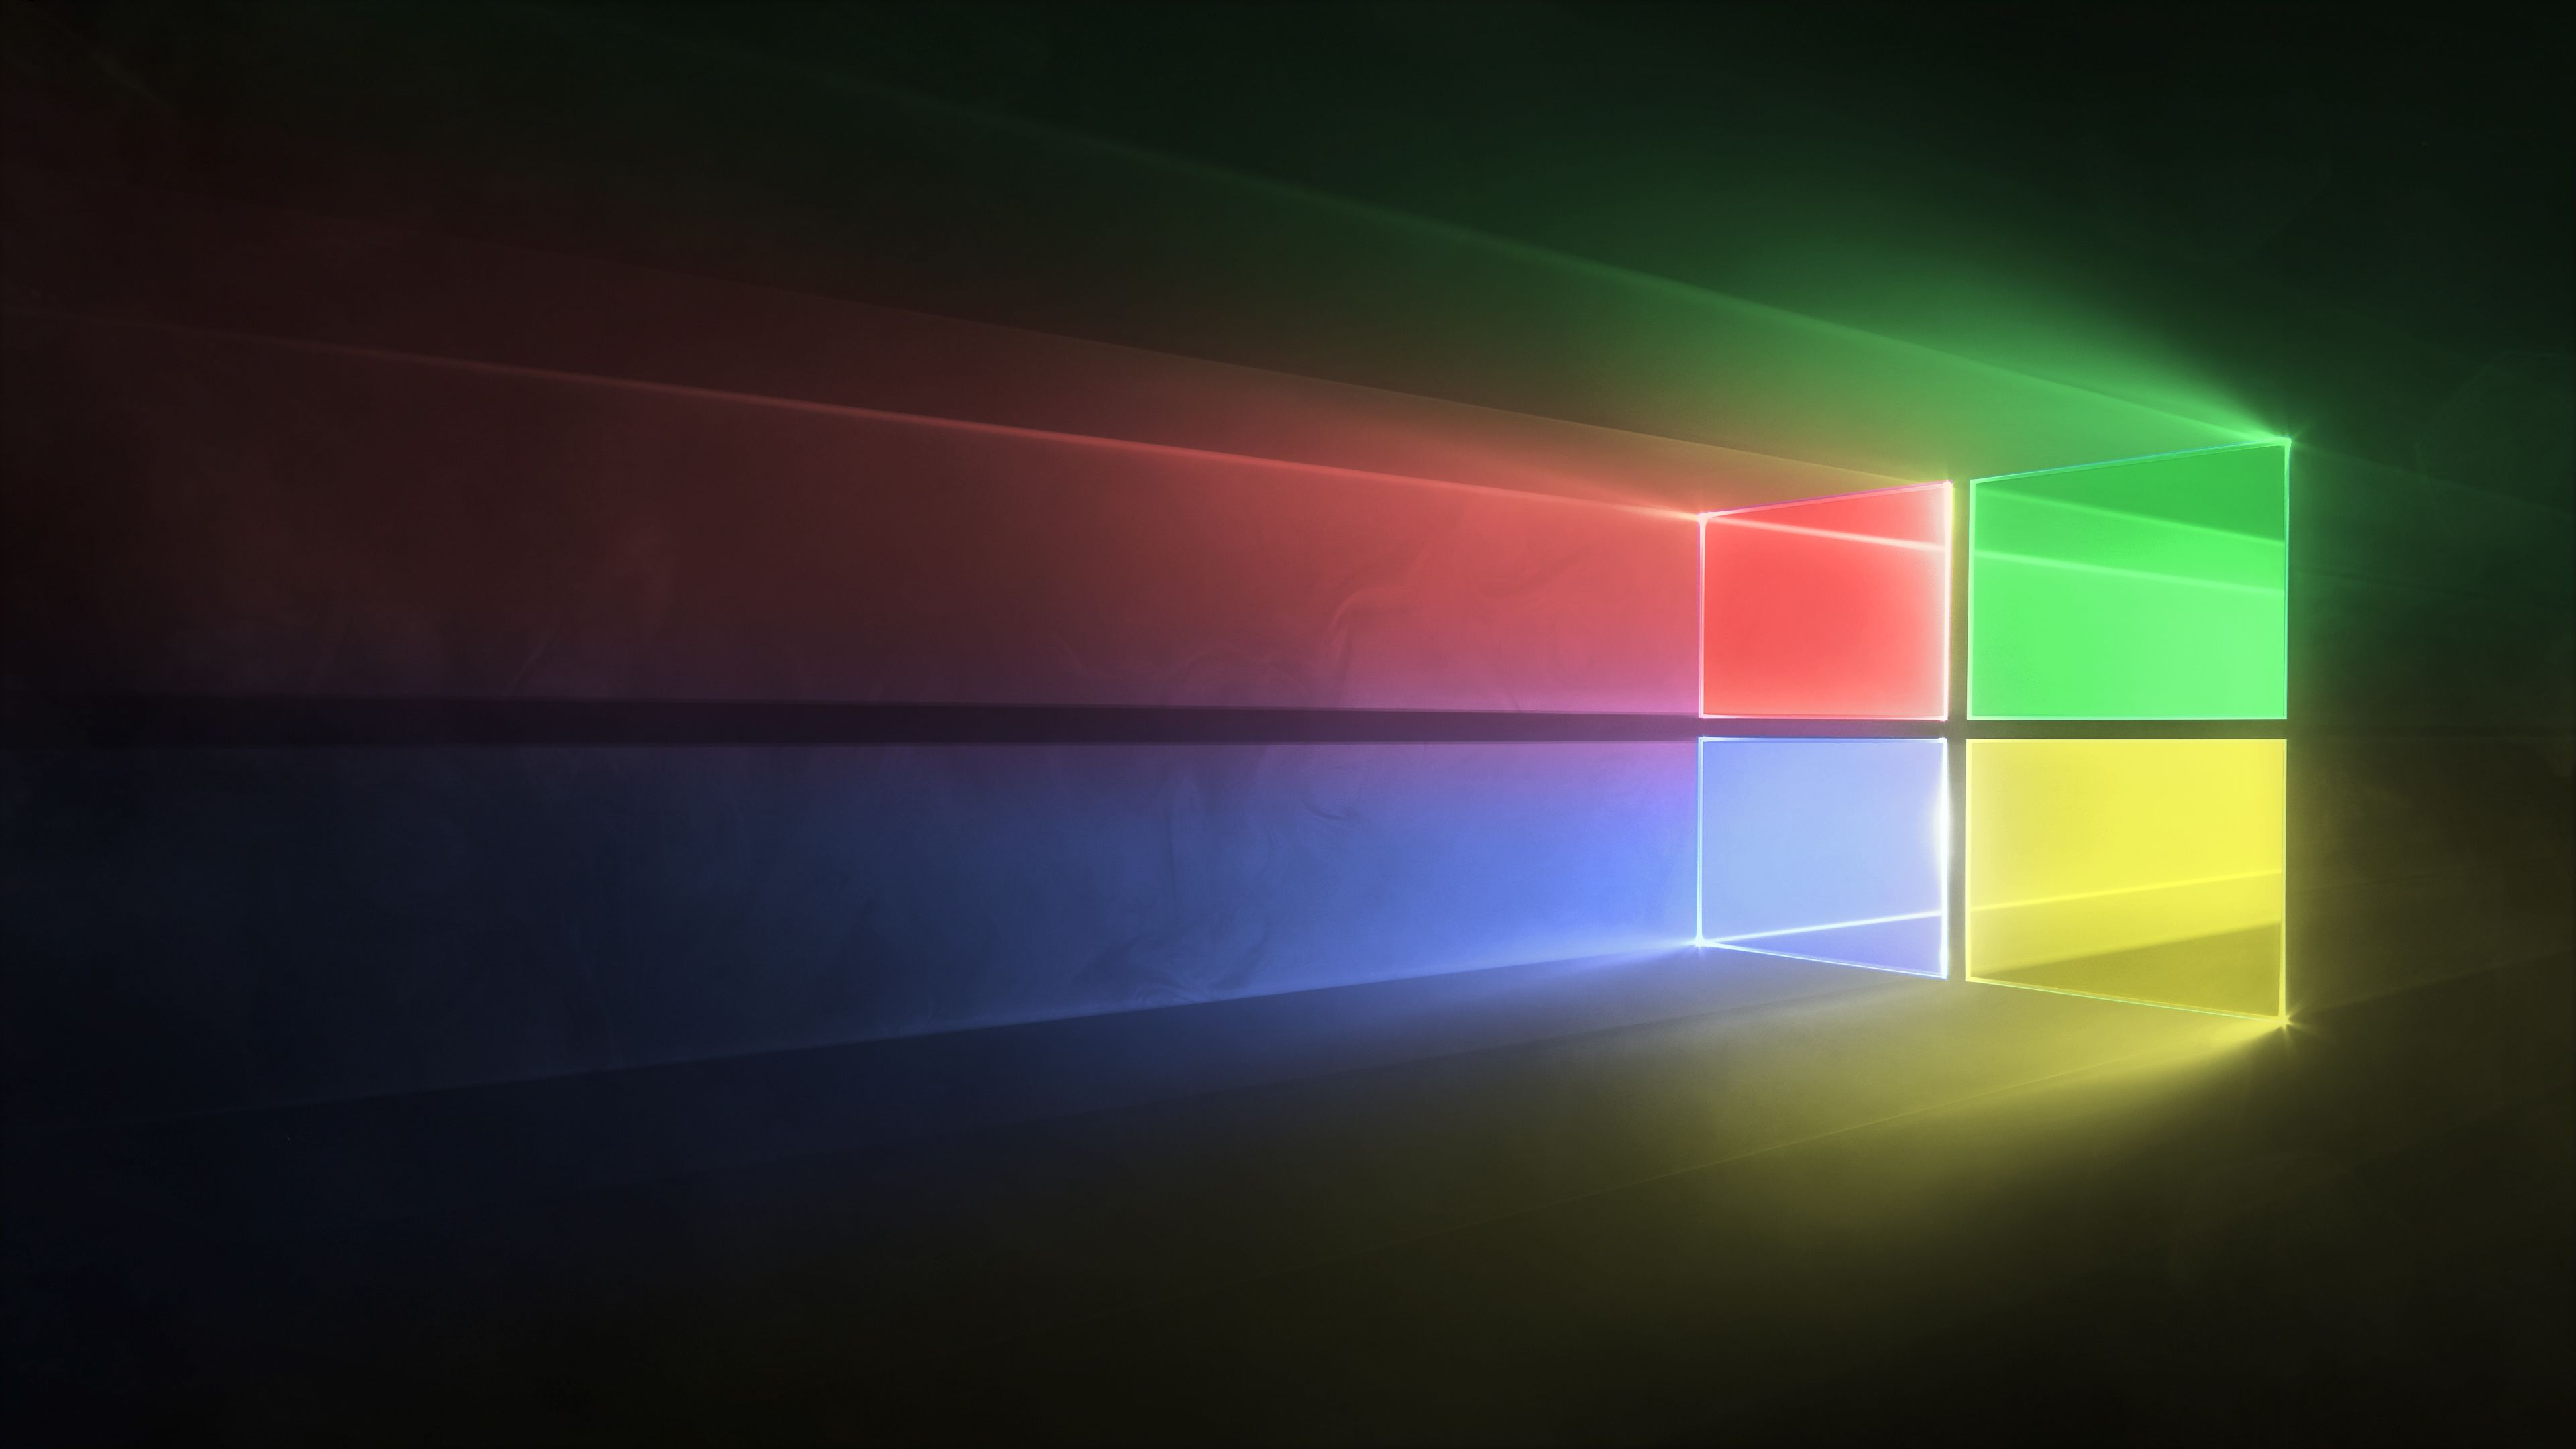 Wallpapers Windows 10 Light Design Lighting Architecture In 2020 Wallpaper Windows 10 Desktop Wallpapers Backgrounds Windows Wallpaper